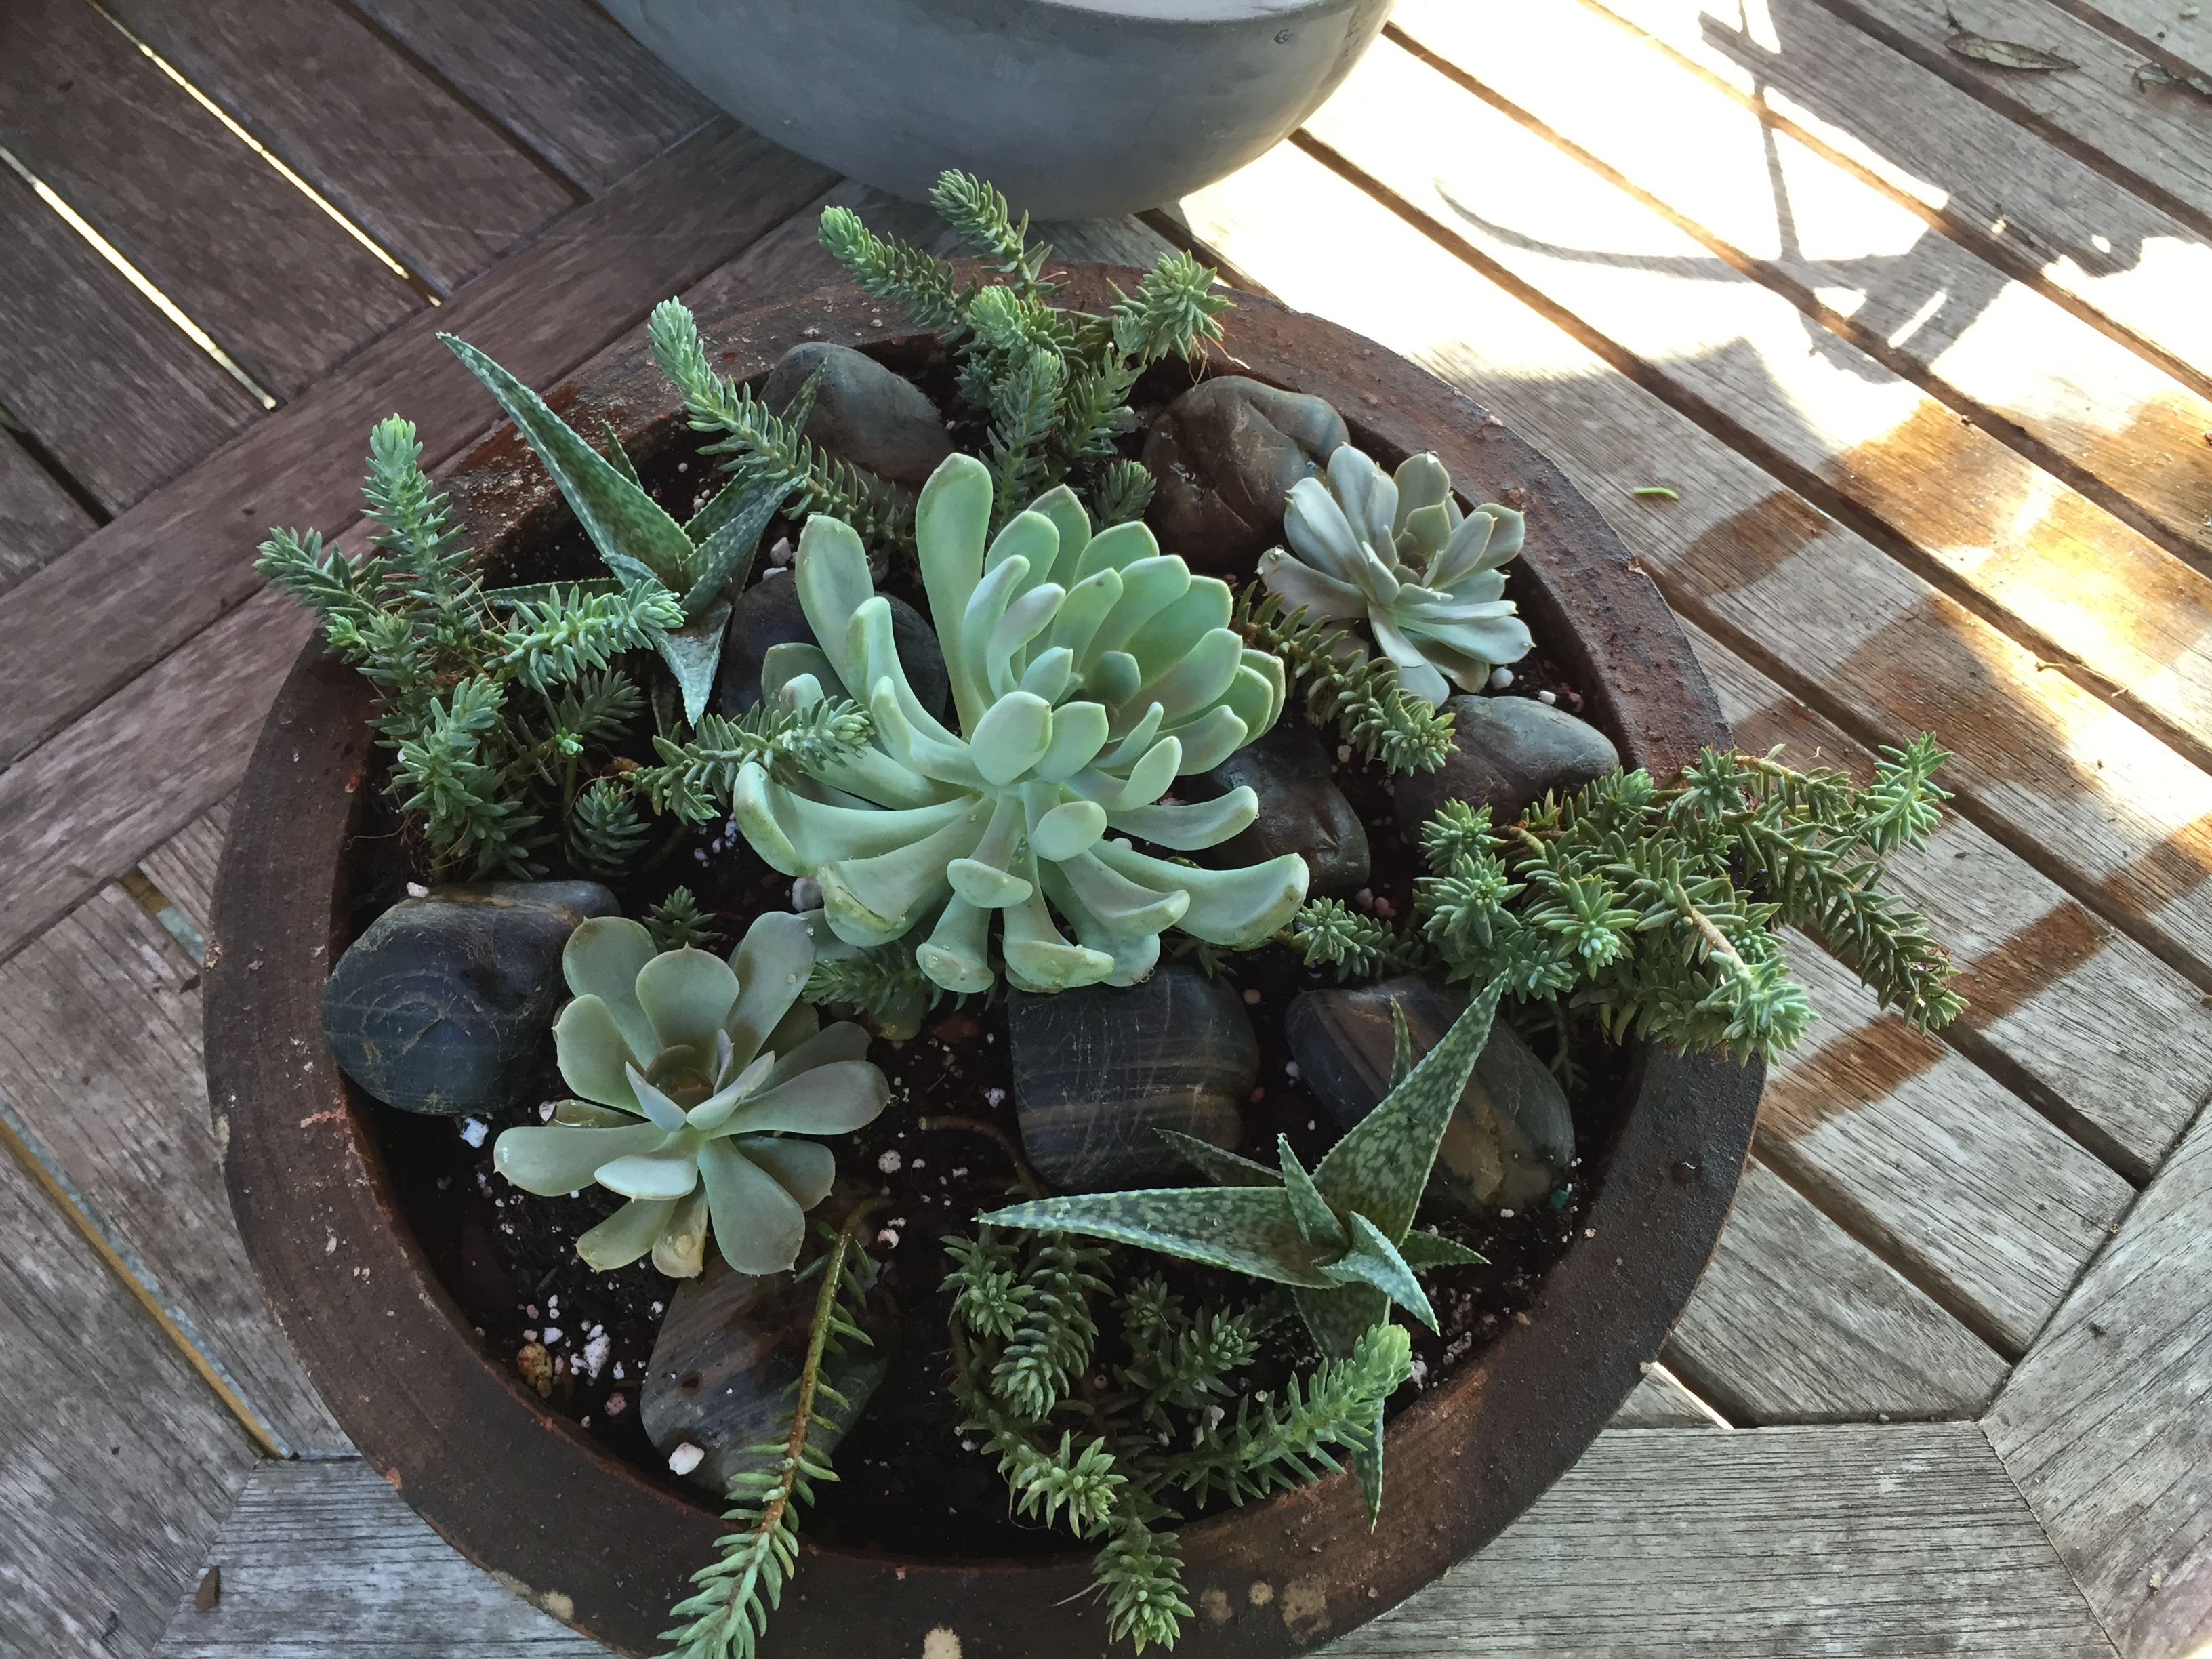 Find This Pin And More On Succulent Gardens10 By Lee2014Ny